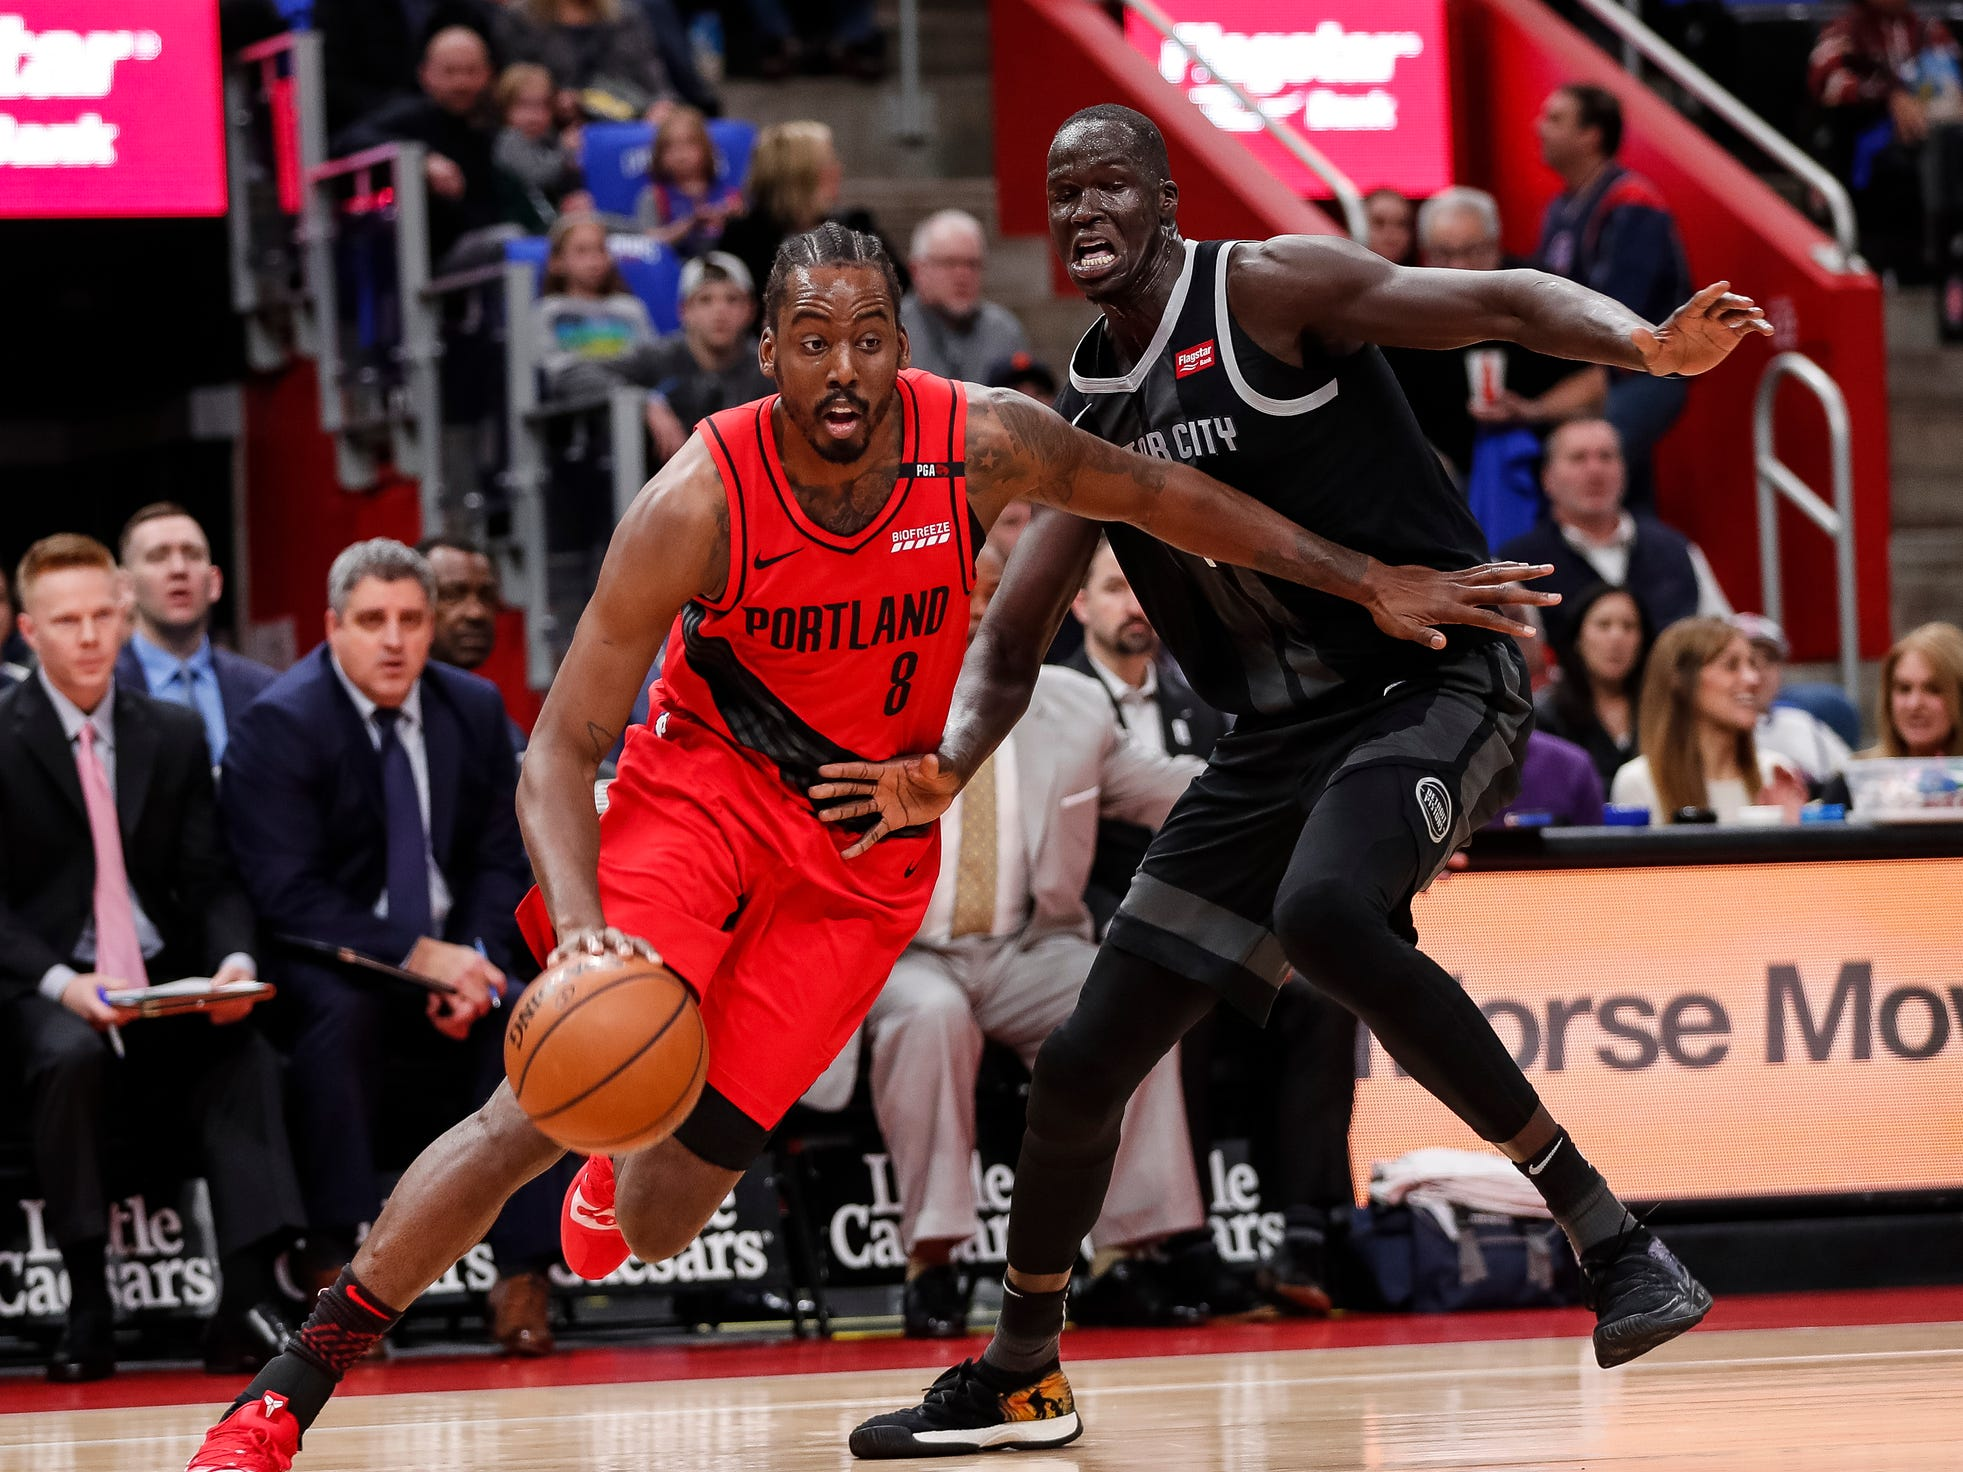 Portland Trail Blazers forward Al-Farouq Aminu drives against Detroit Pistons forward Thon Maker during the first half at the Little Caesars Arena, March 30, 2019.